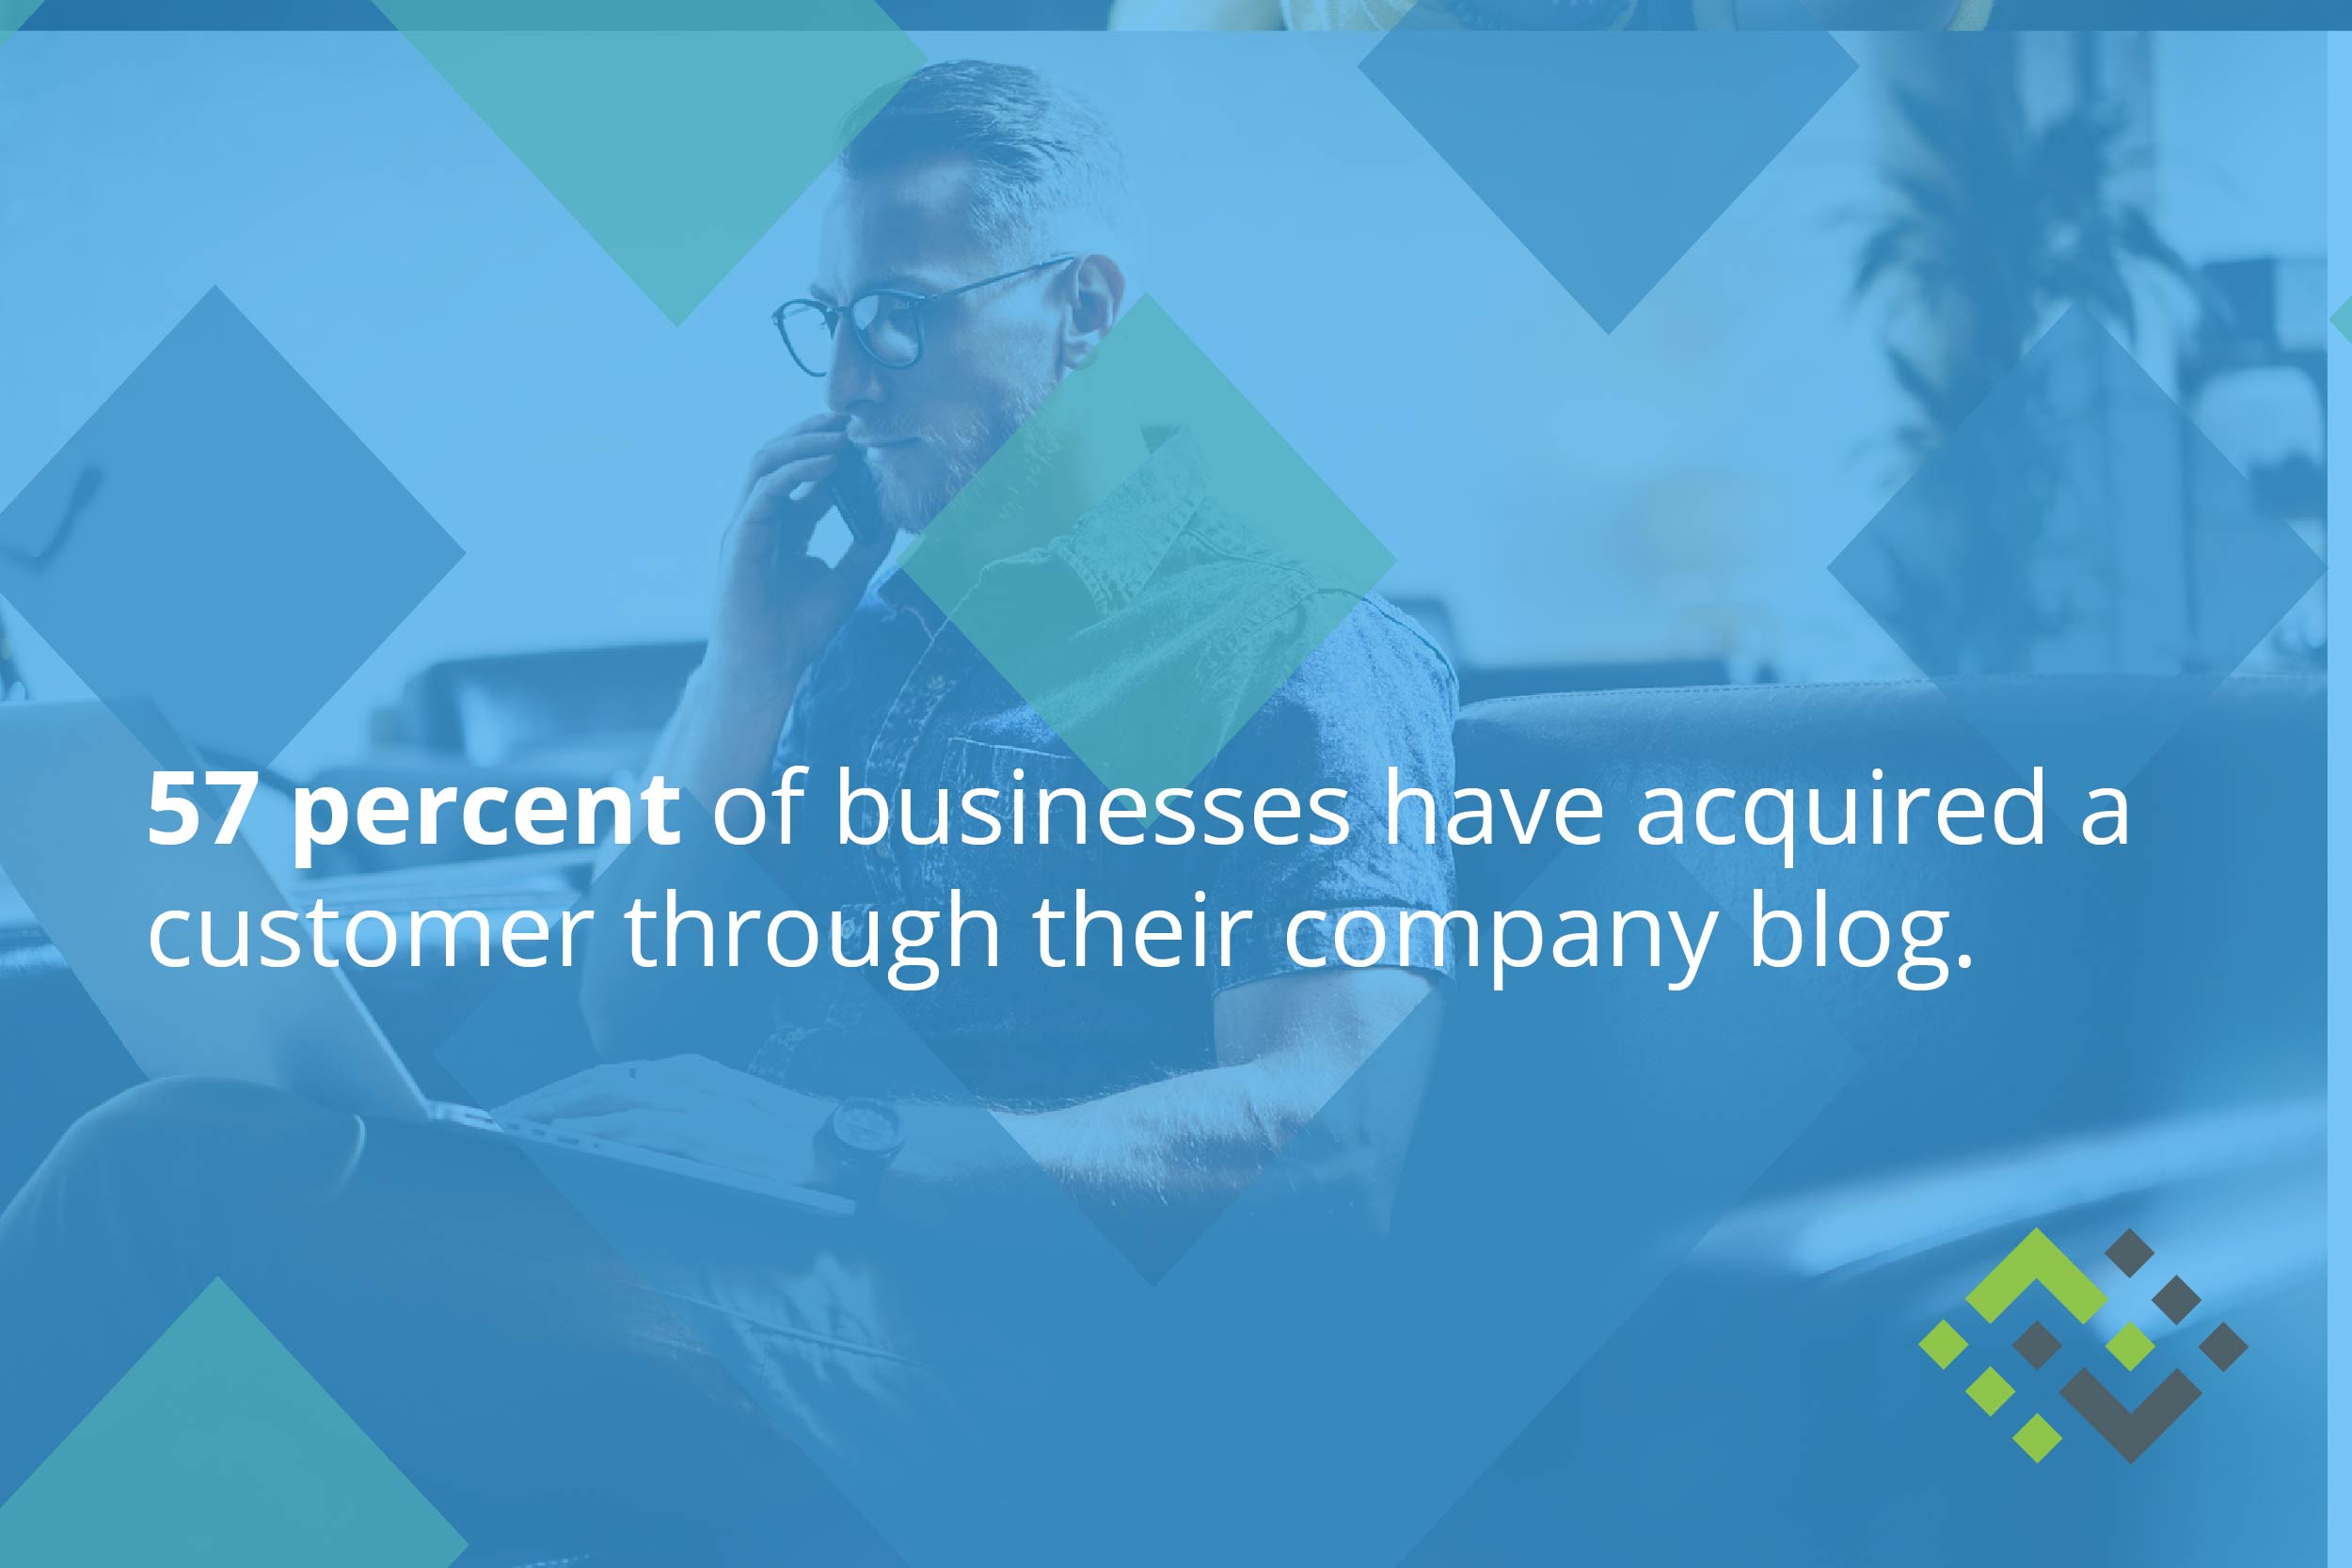 57% of businesses have acquired a customer through their company blog.